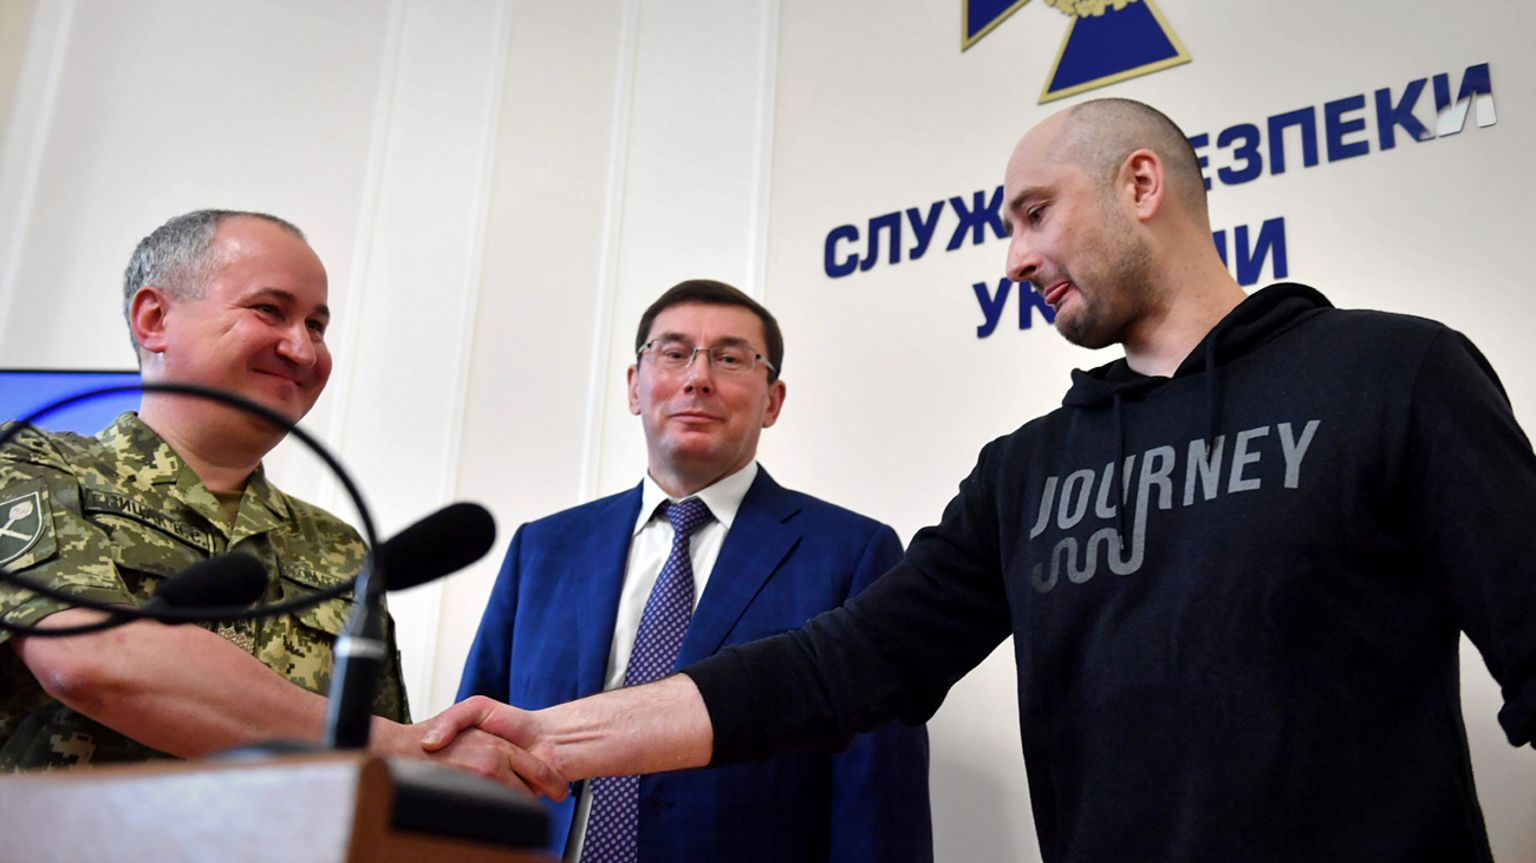 Babchenko's press conference, 30 May 2018